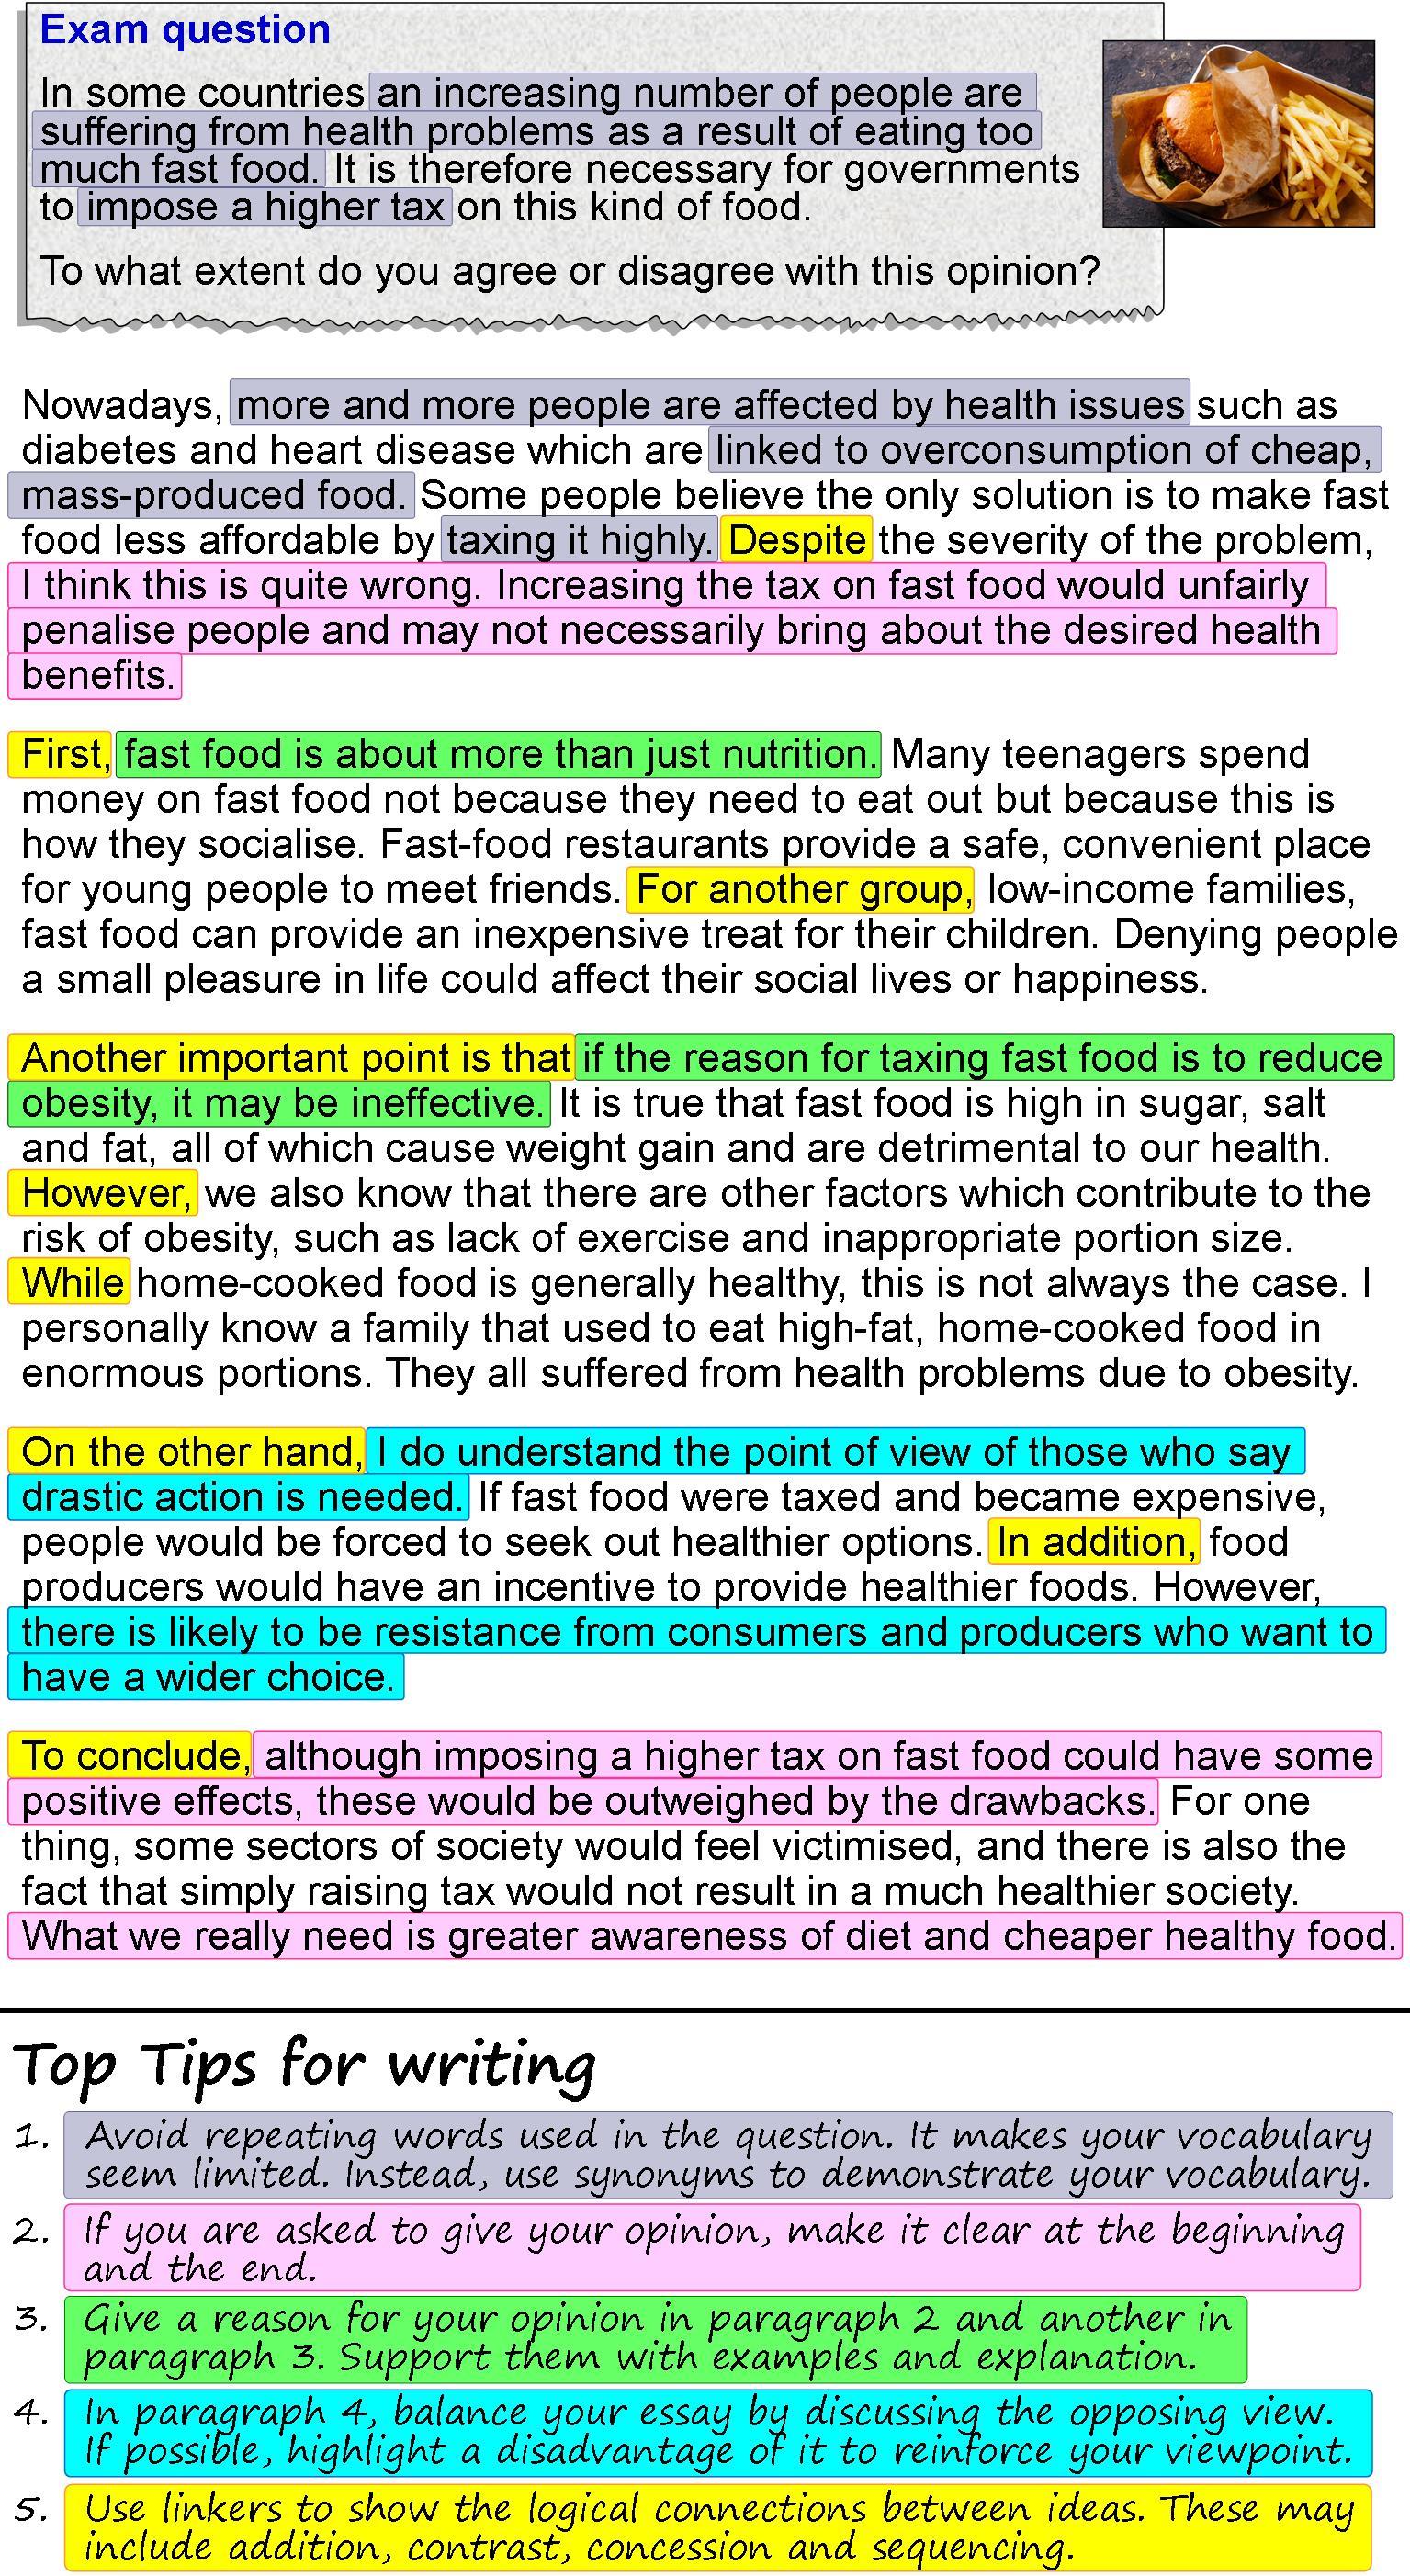 014 An Opinion Essay About Fast Food 4 How To Write Fascinating Academic English In Exam Full